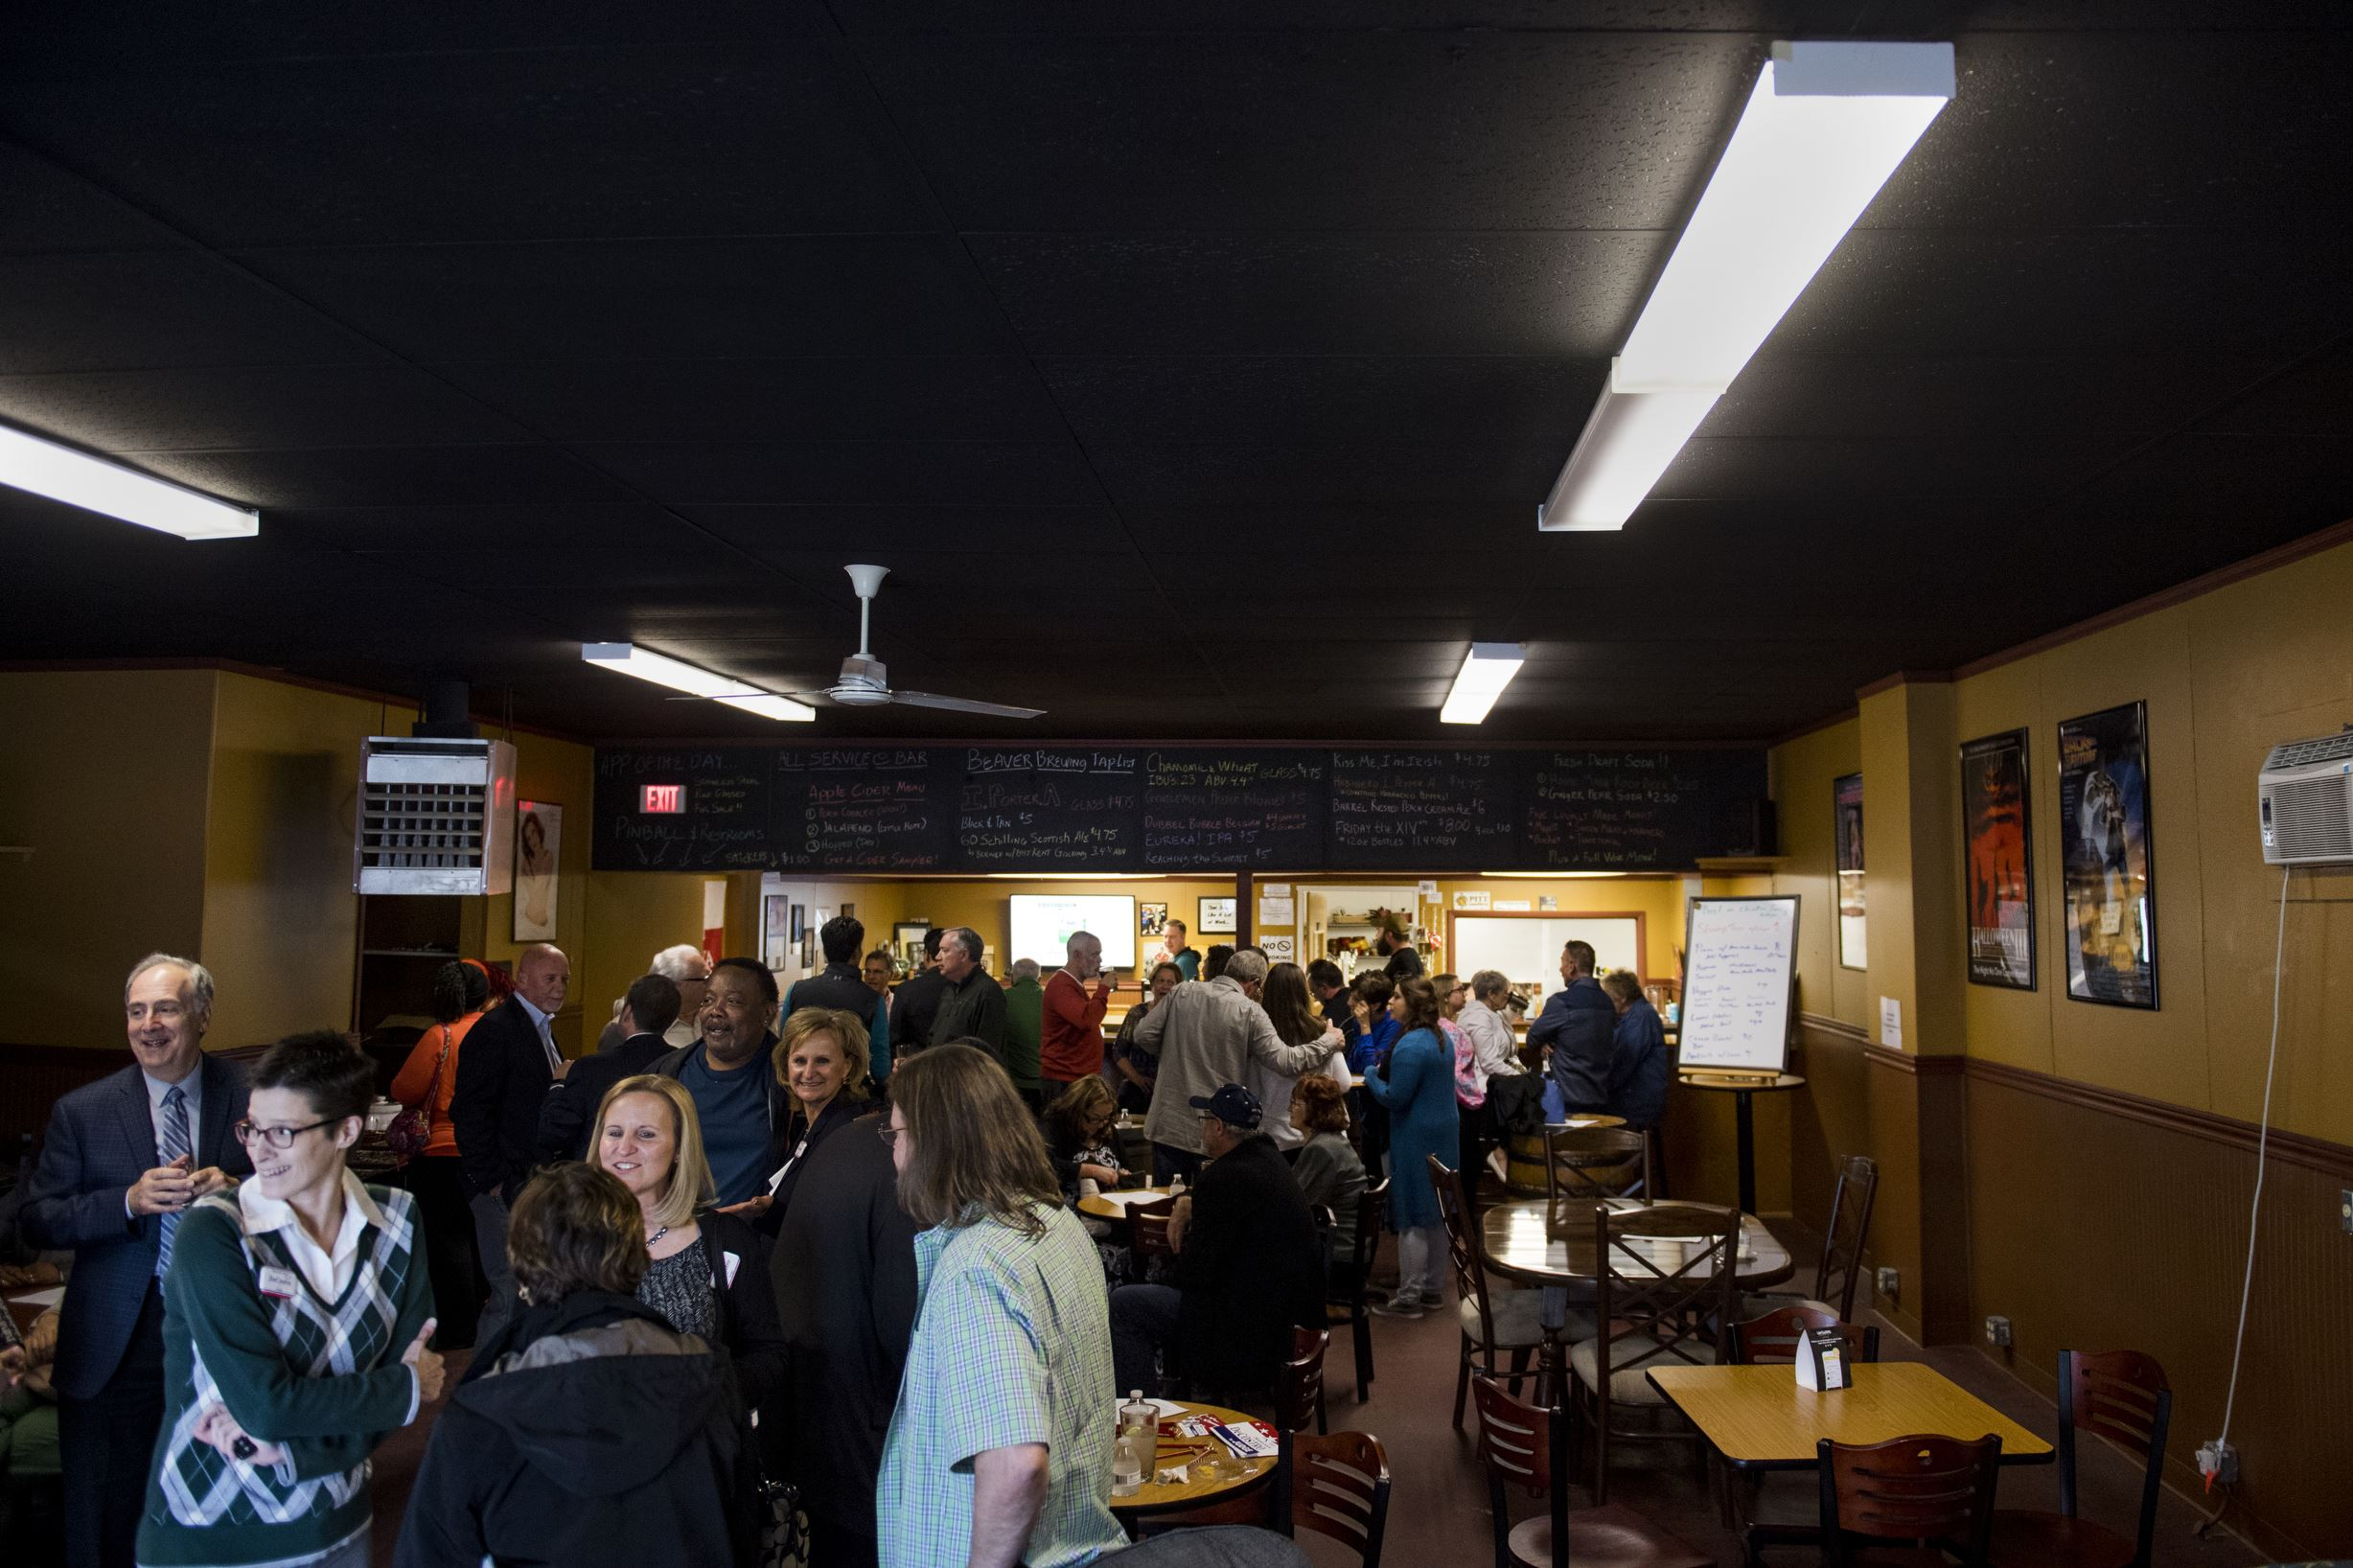 20170504scBeaverBrewing02-1 People enjoy various beers and each other's company on Thursday, May 4, 2017 at Beaver Brewing in Beaver Falls.